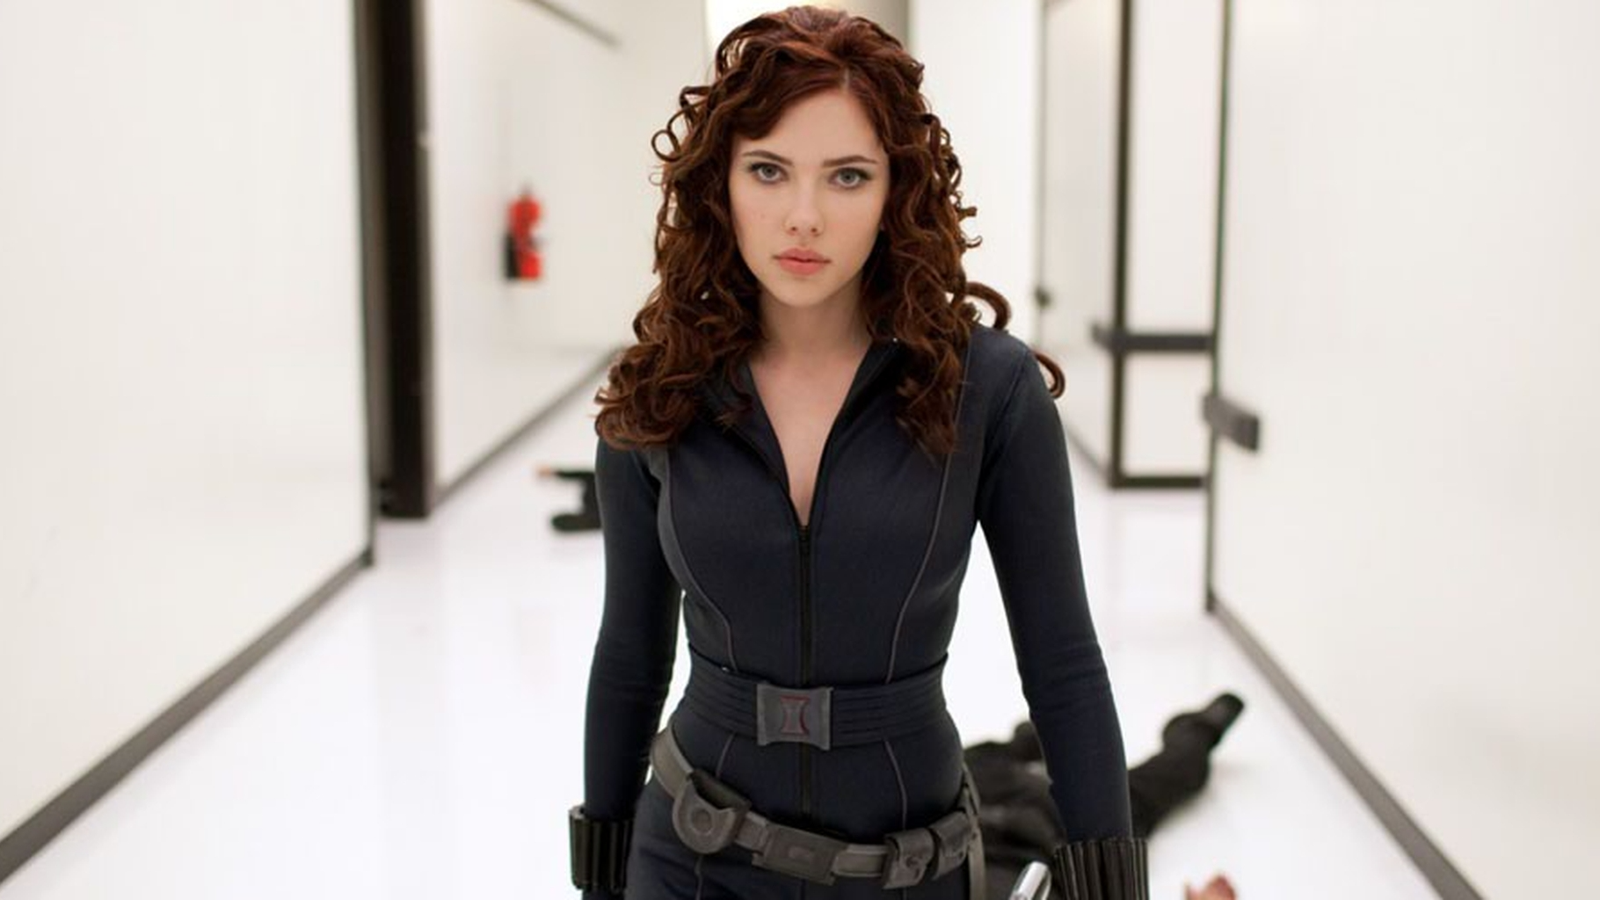 Report: Black Widow Movie Being Planned For 2020